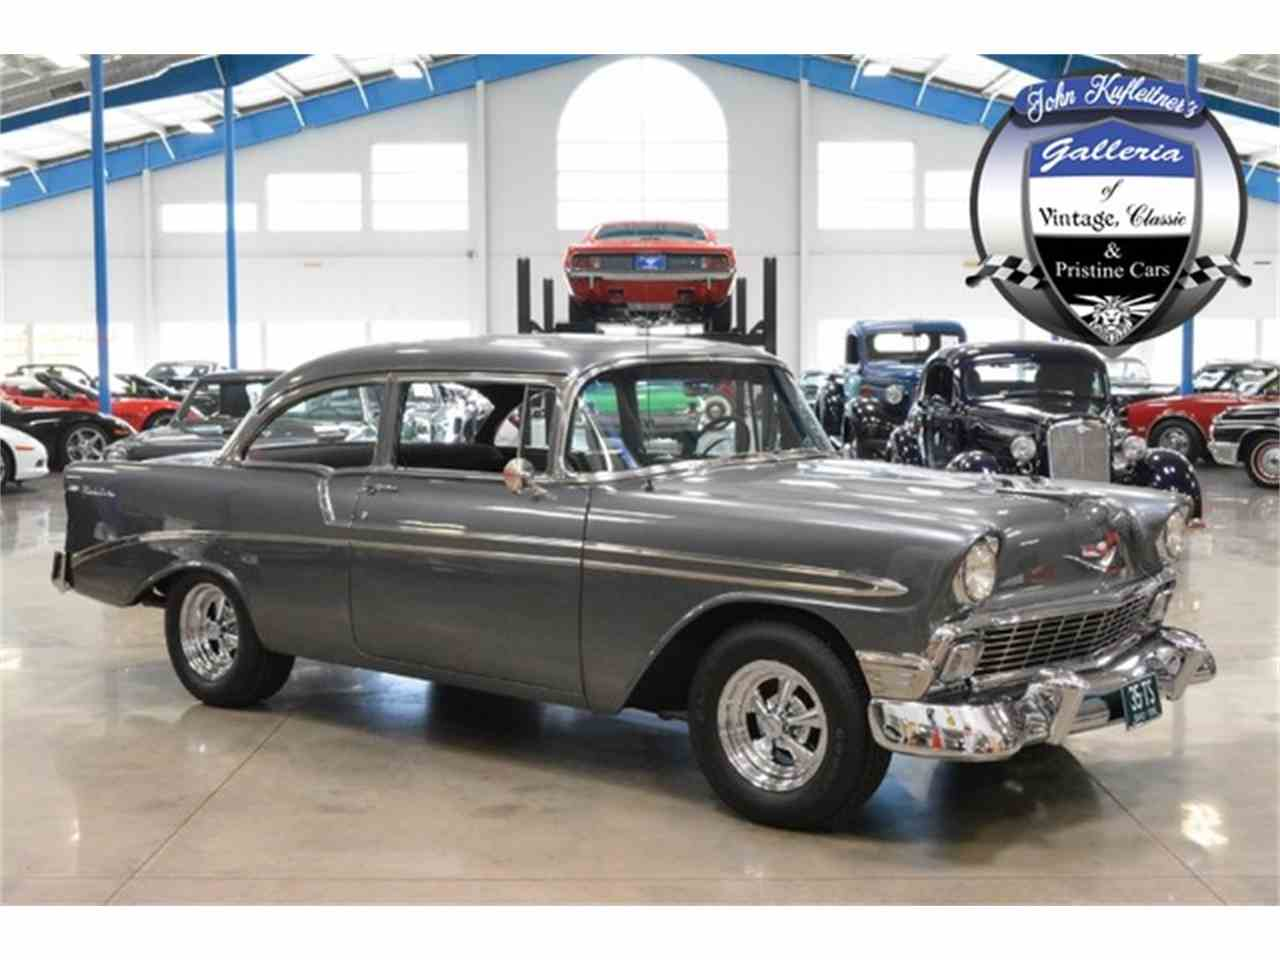 1956 chevrolet bel air for sale classic car liquidators - 1956 Chevrolet Bel Air Post Resto Mod For Sale Cc 811321